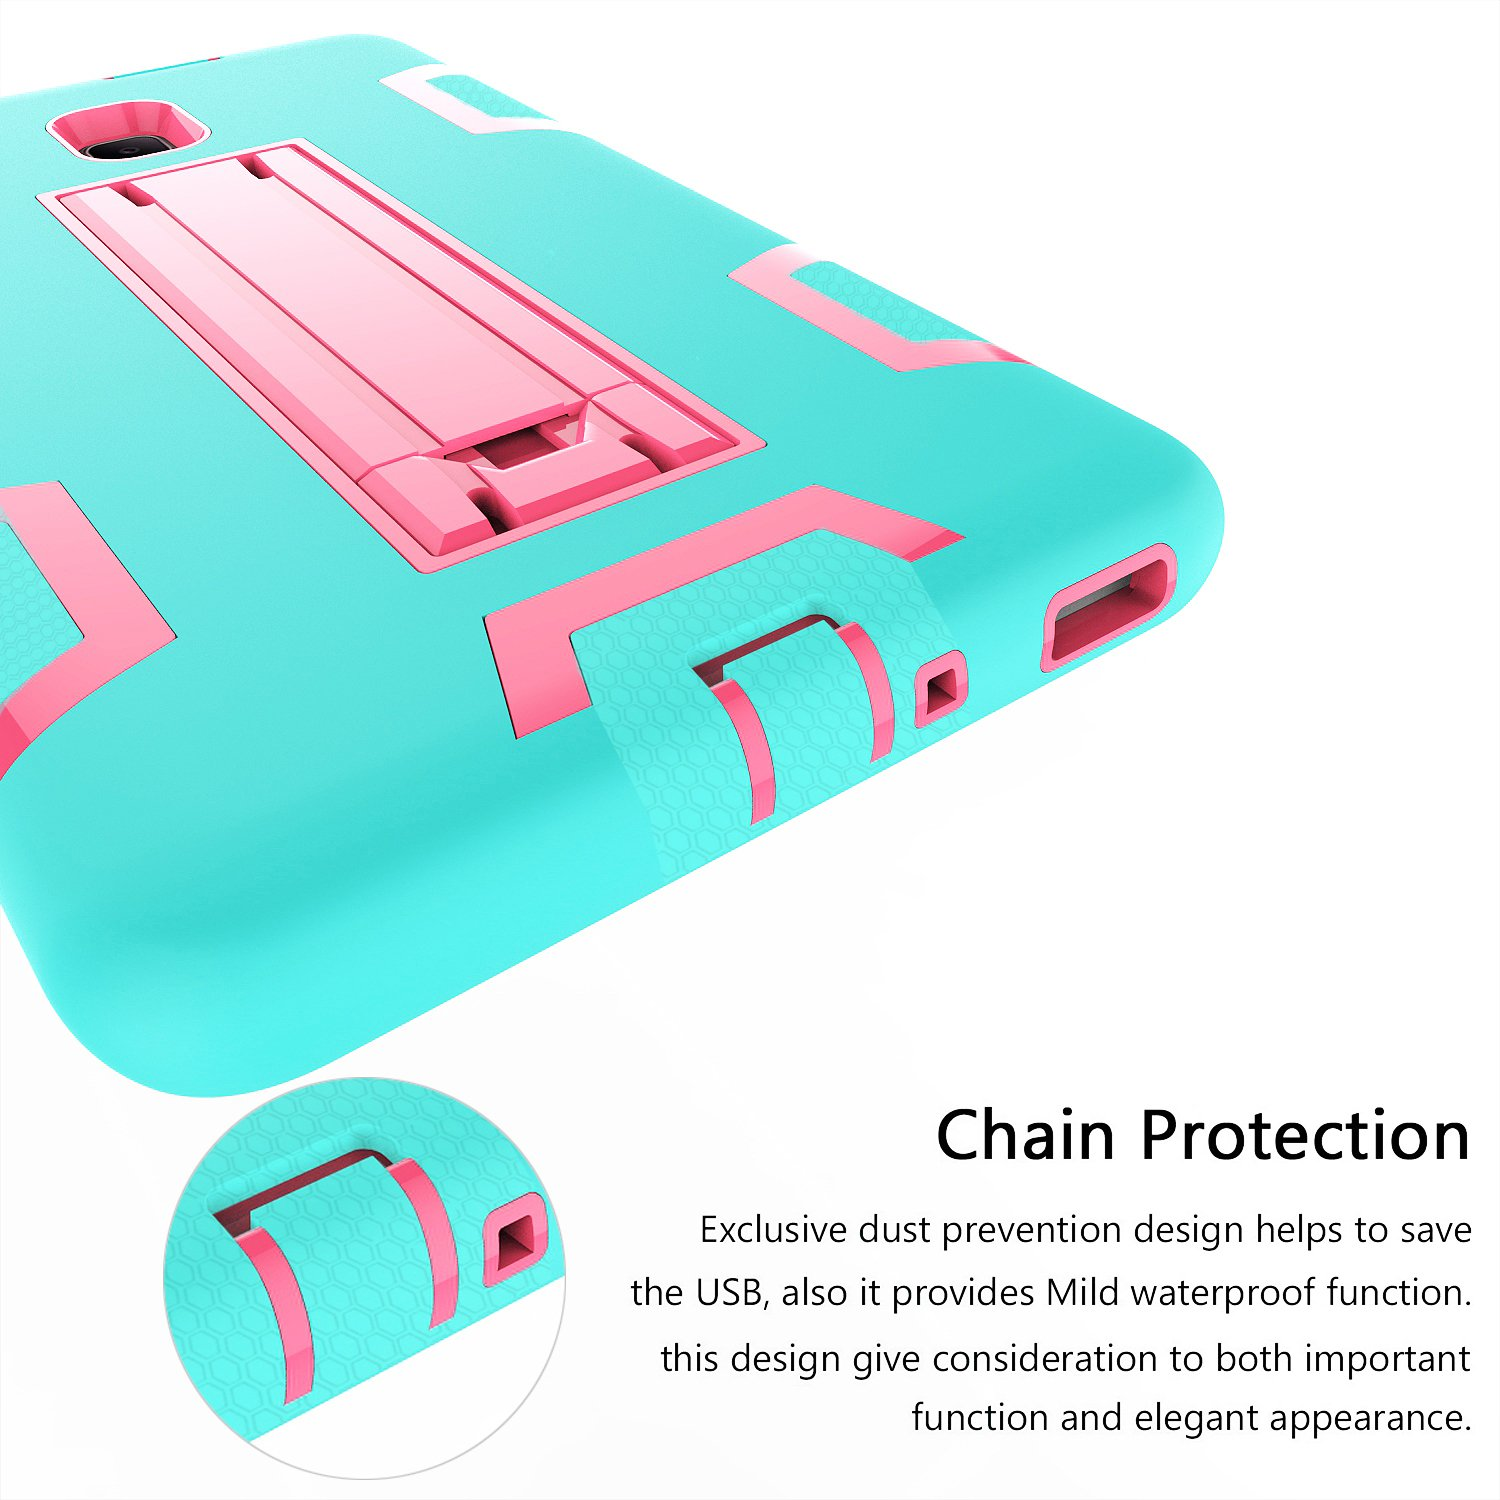 PPSHA Samsung Galaxy Tab A 8.0 2017 Case, High Impact Armor Heavy Duty Hybrid Shockproof Protection Cover Built With Stand for Galaxy Tab A 8.0 (SM-T380/T385) 2017 Release (Teal+Rose) by PPSHA (Image #7)